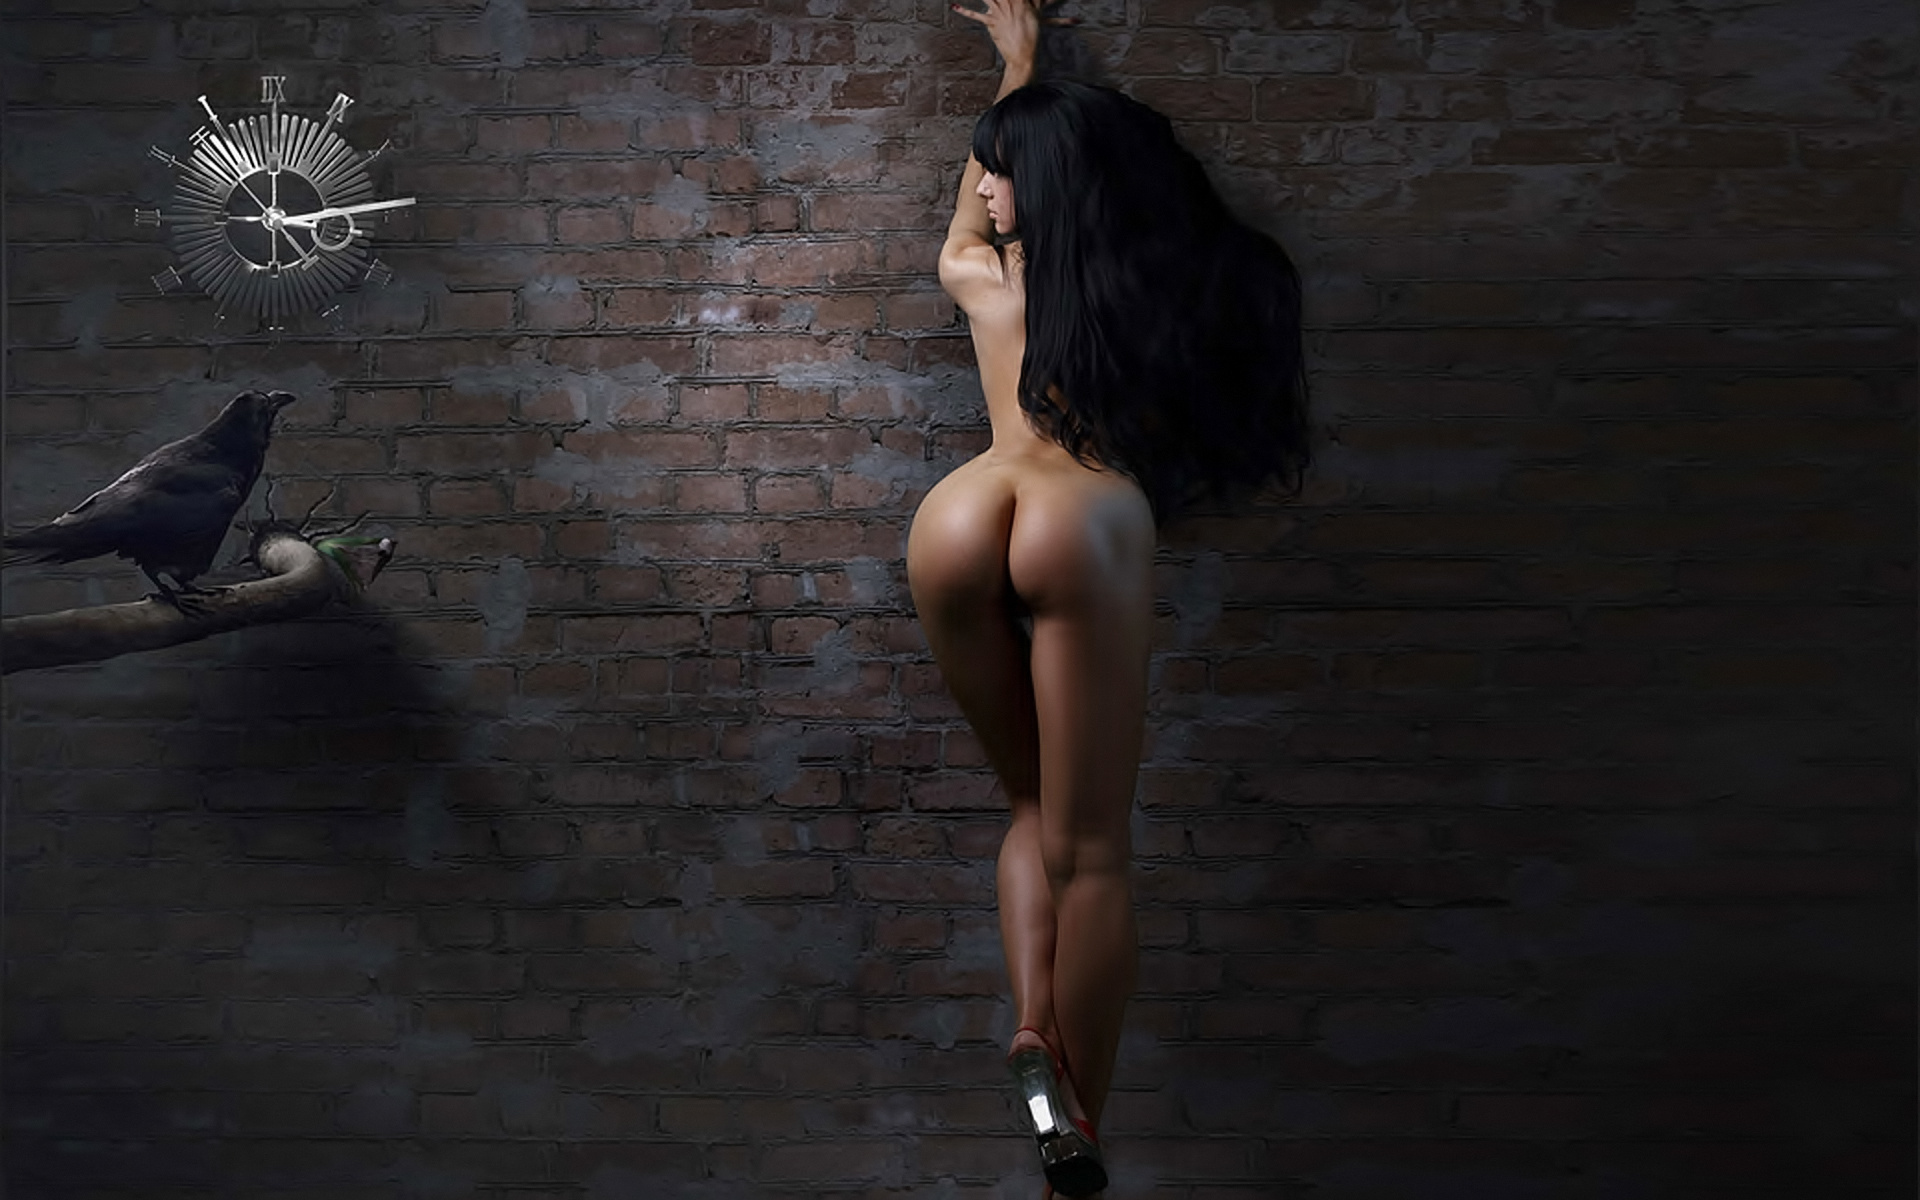 Free Live Black Nude Chicks Wallpapers